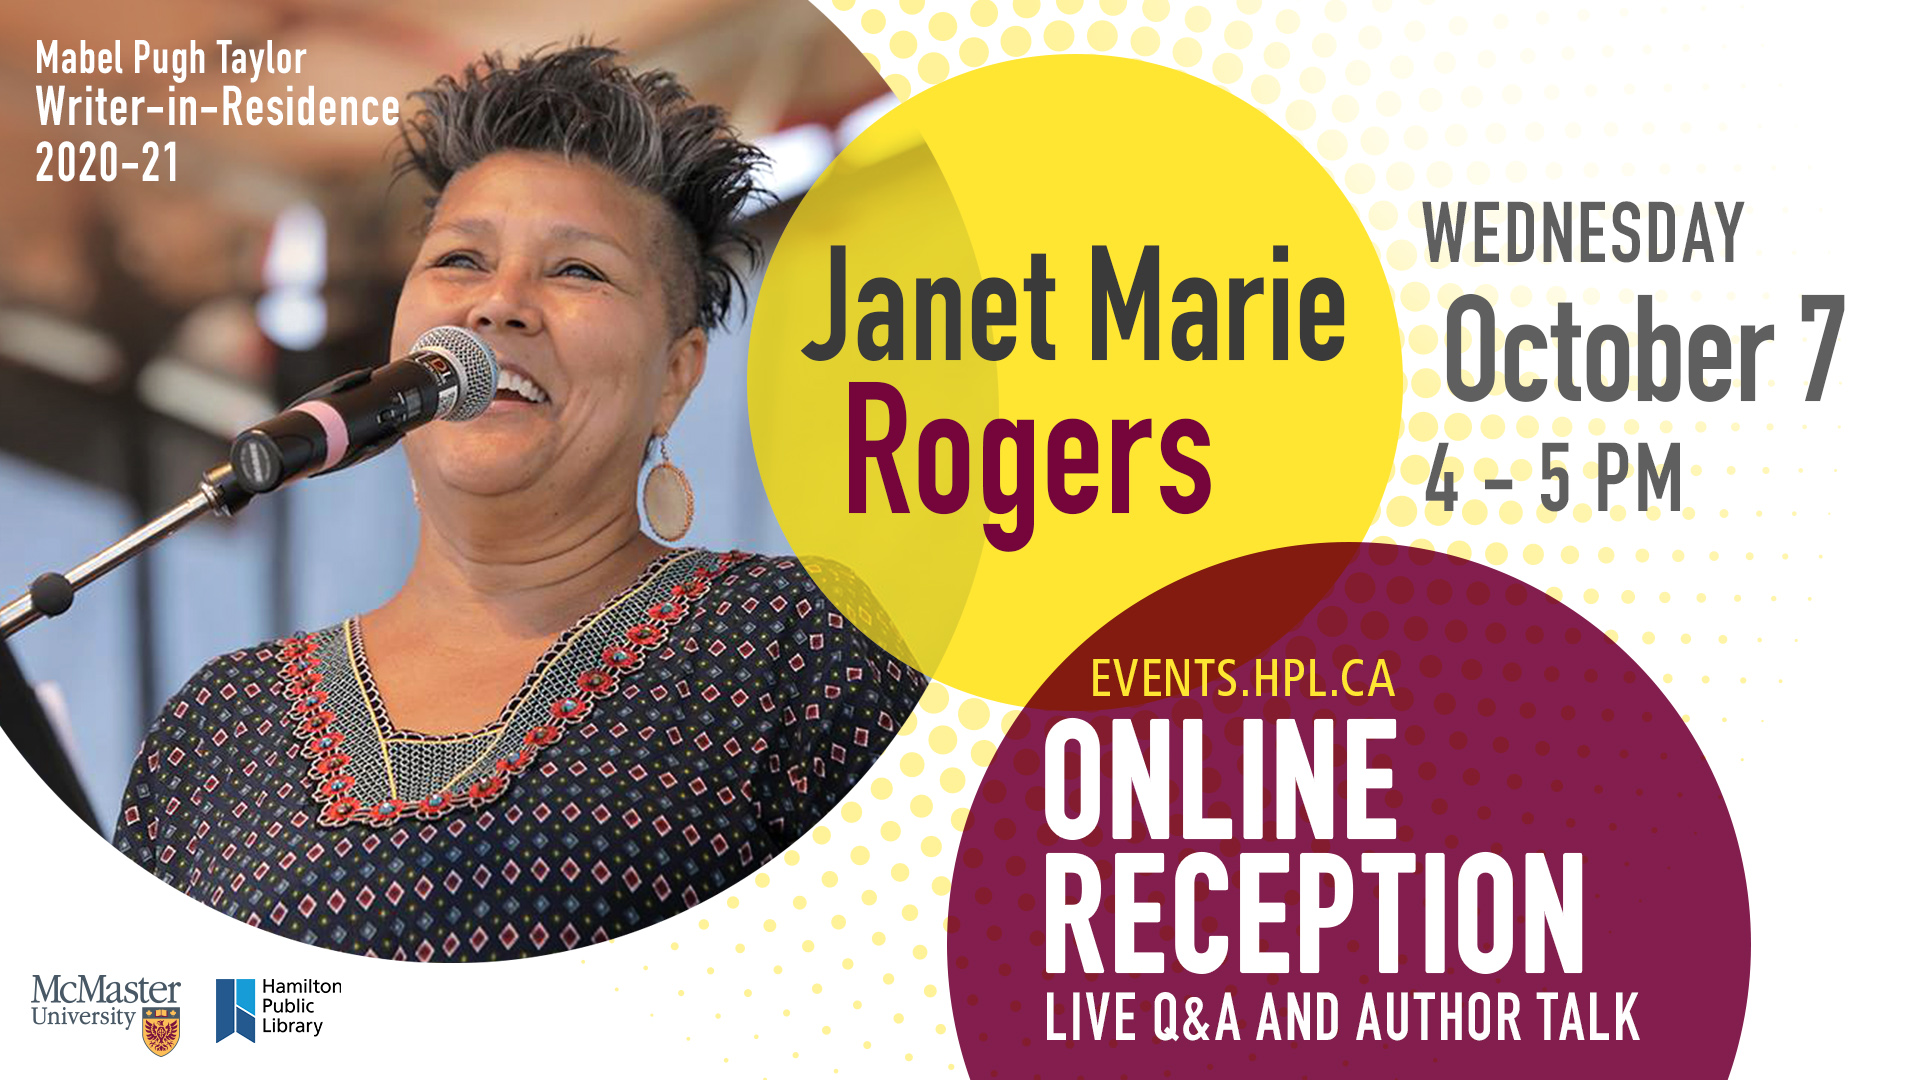 Poster promoting the Oct 7 virtual reception with Janet Rogers